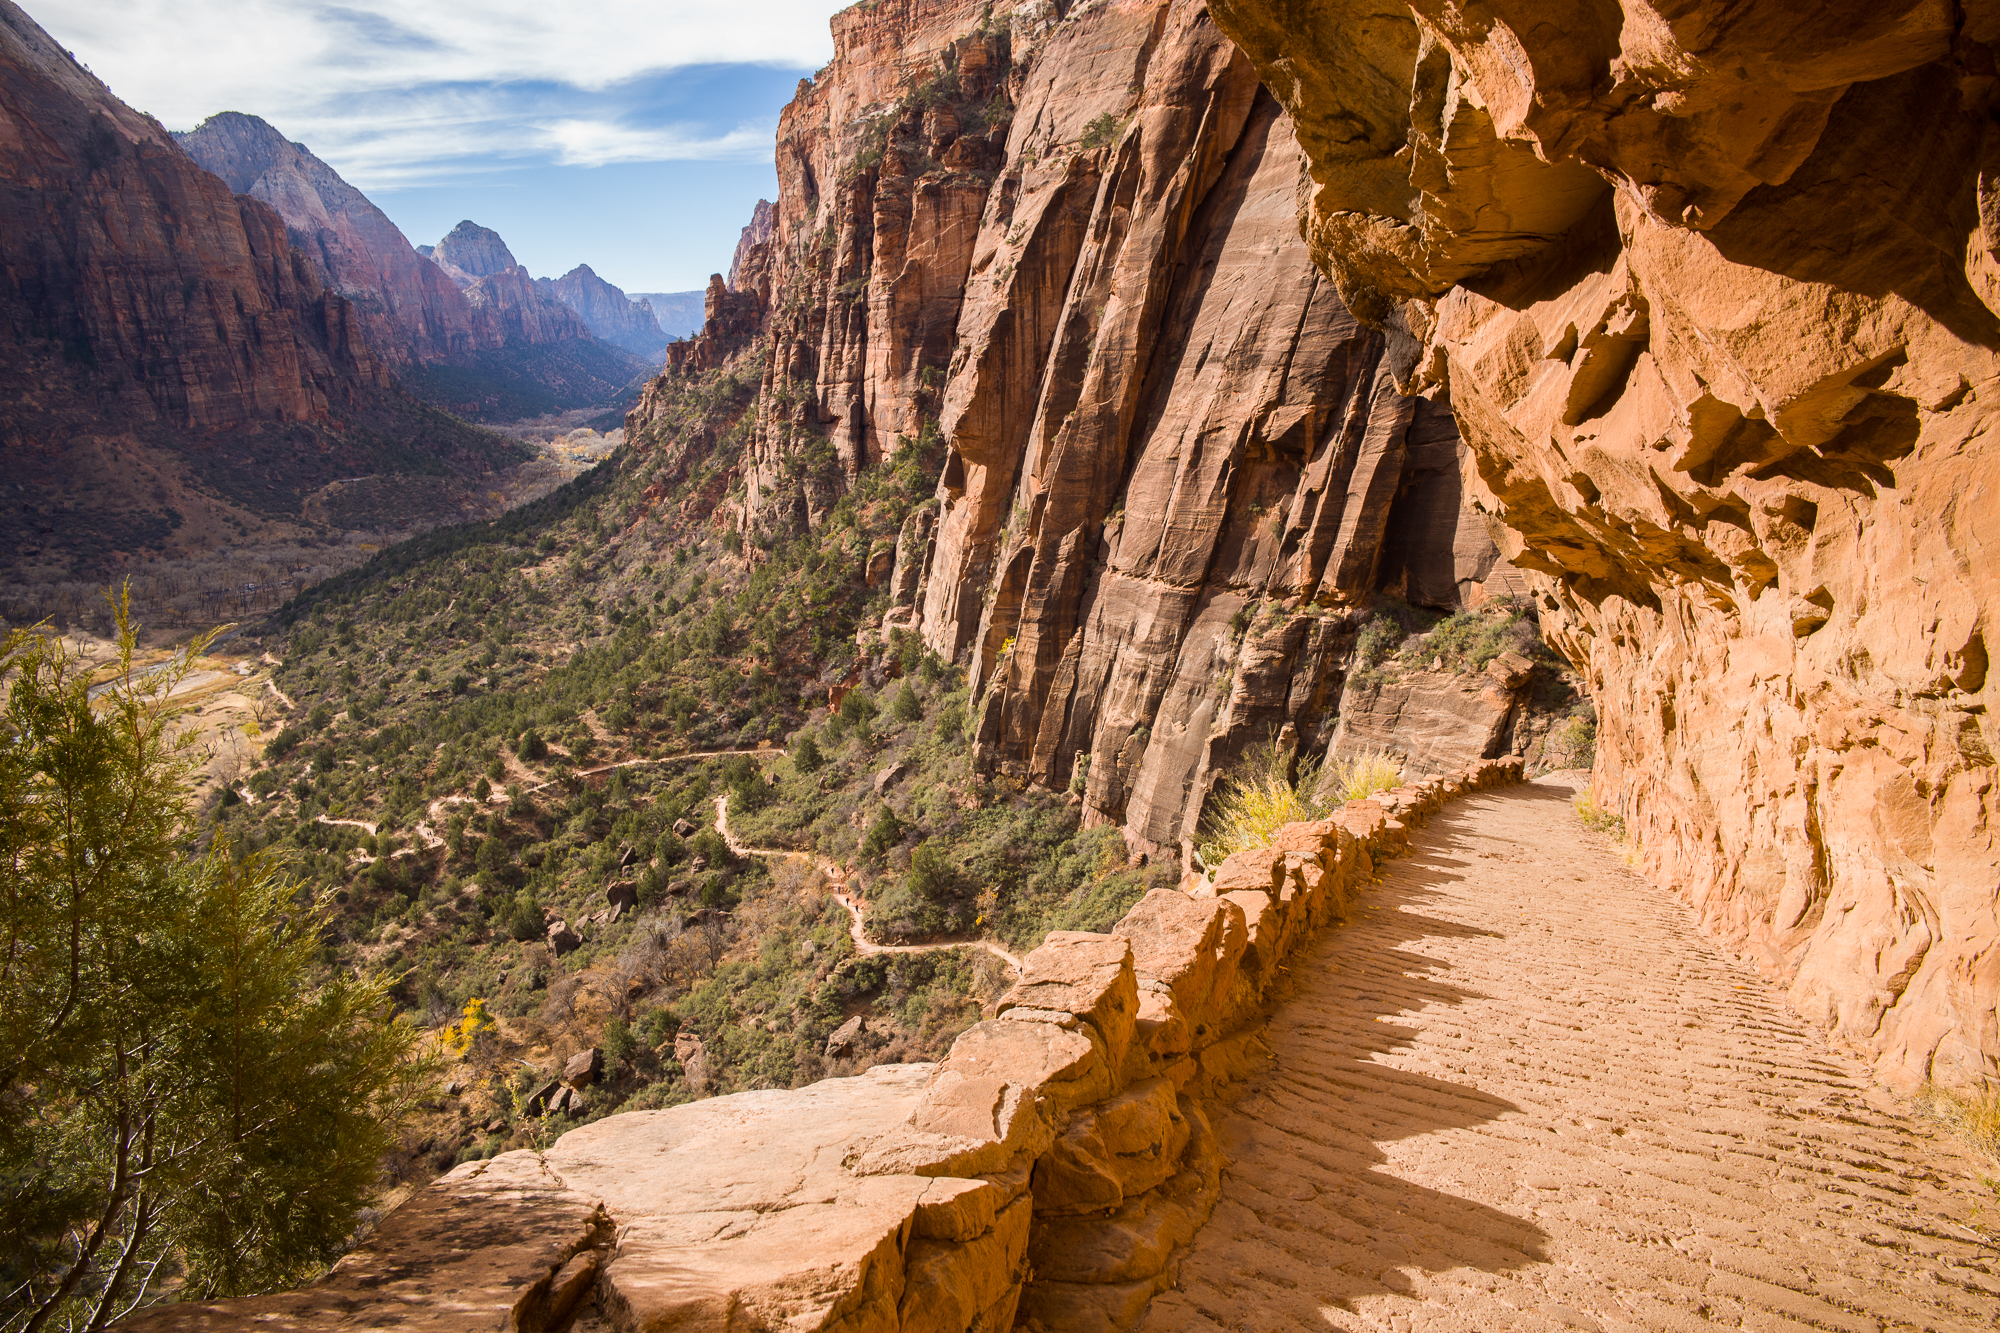 Section 1 of the Angels Landing hike gently ascends from the Virgin River valley.